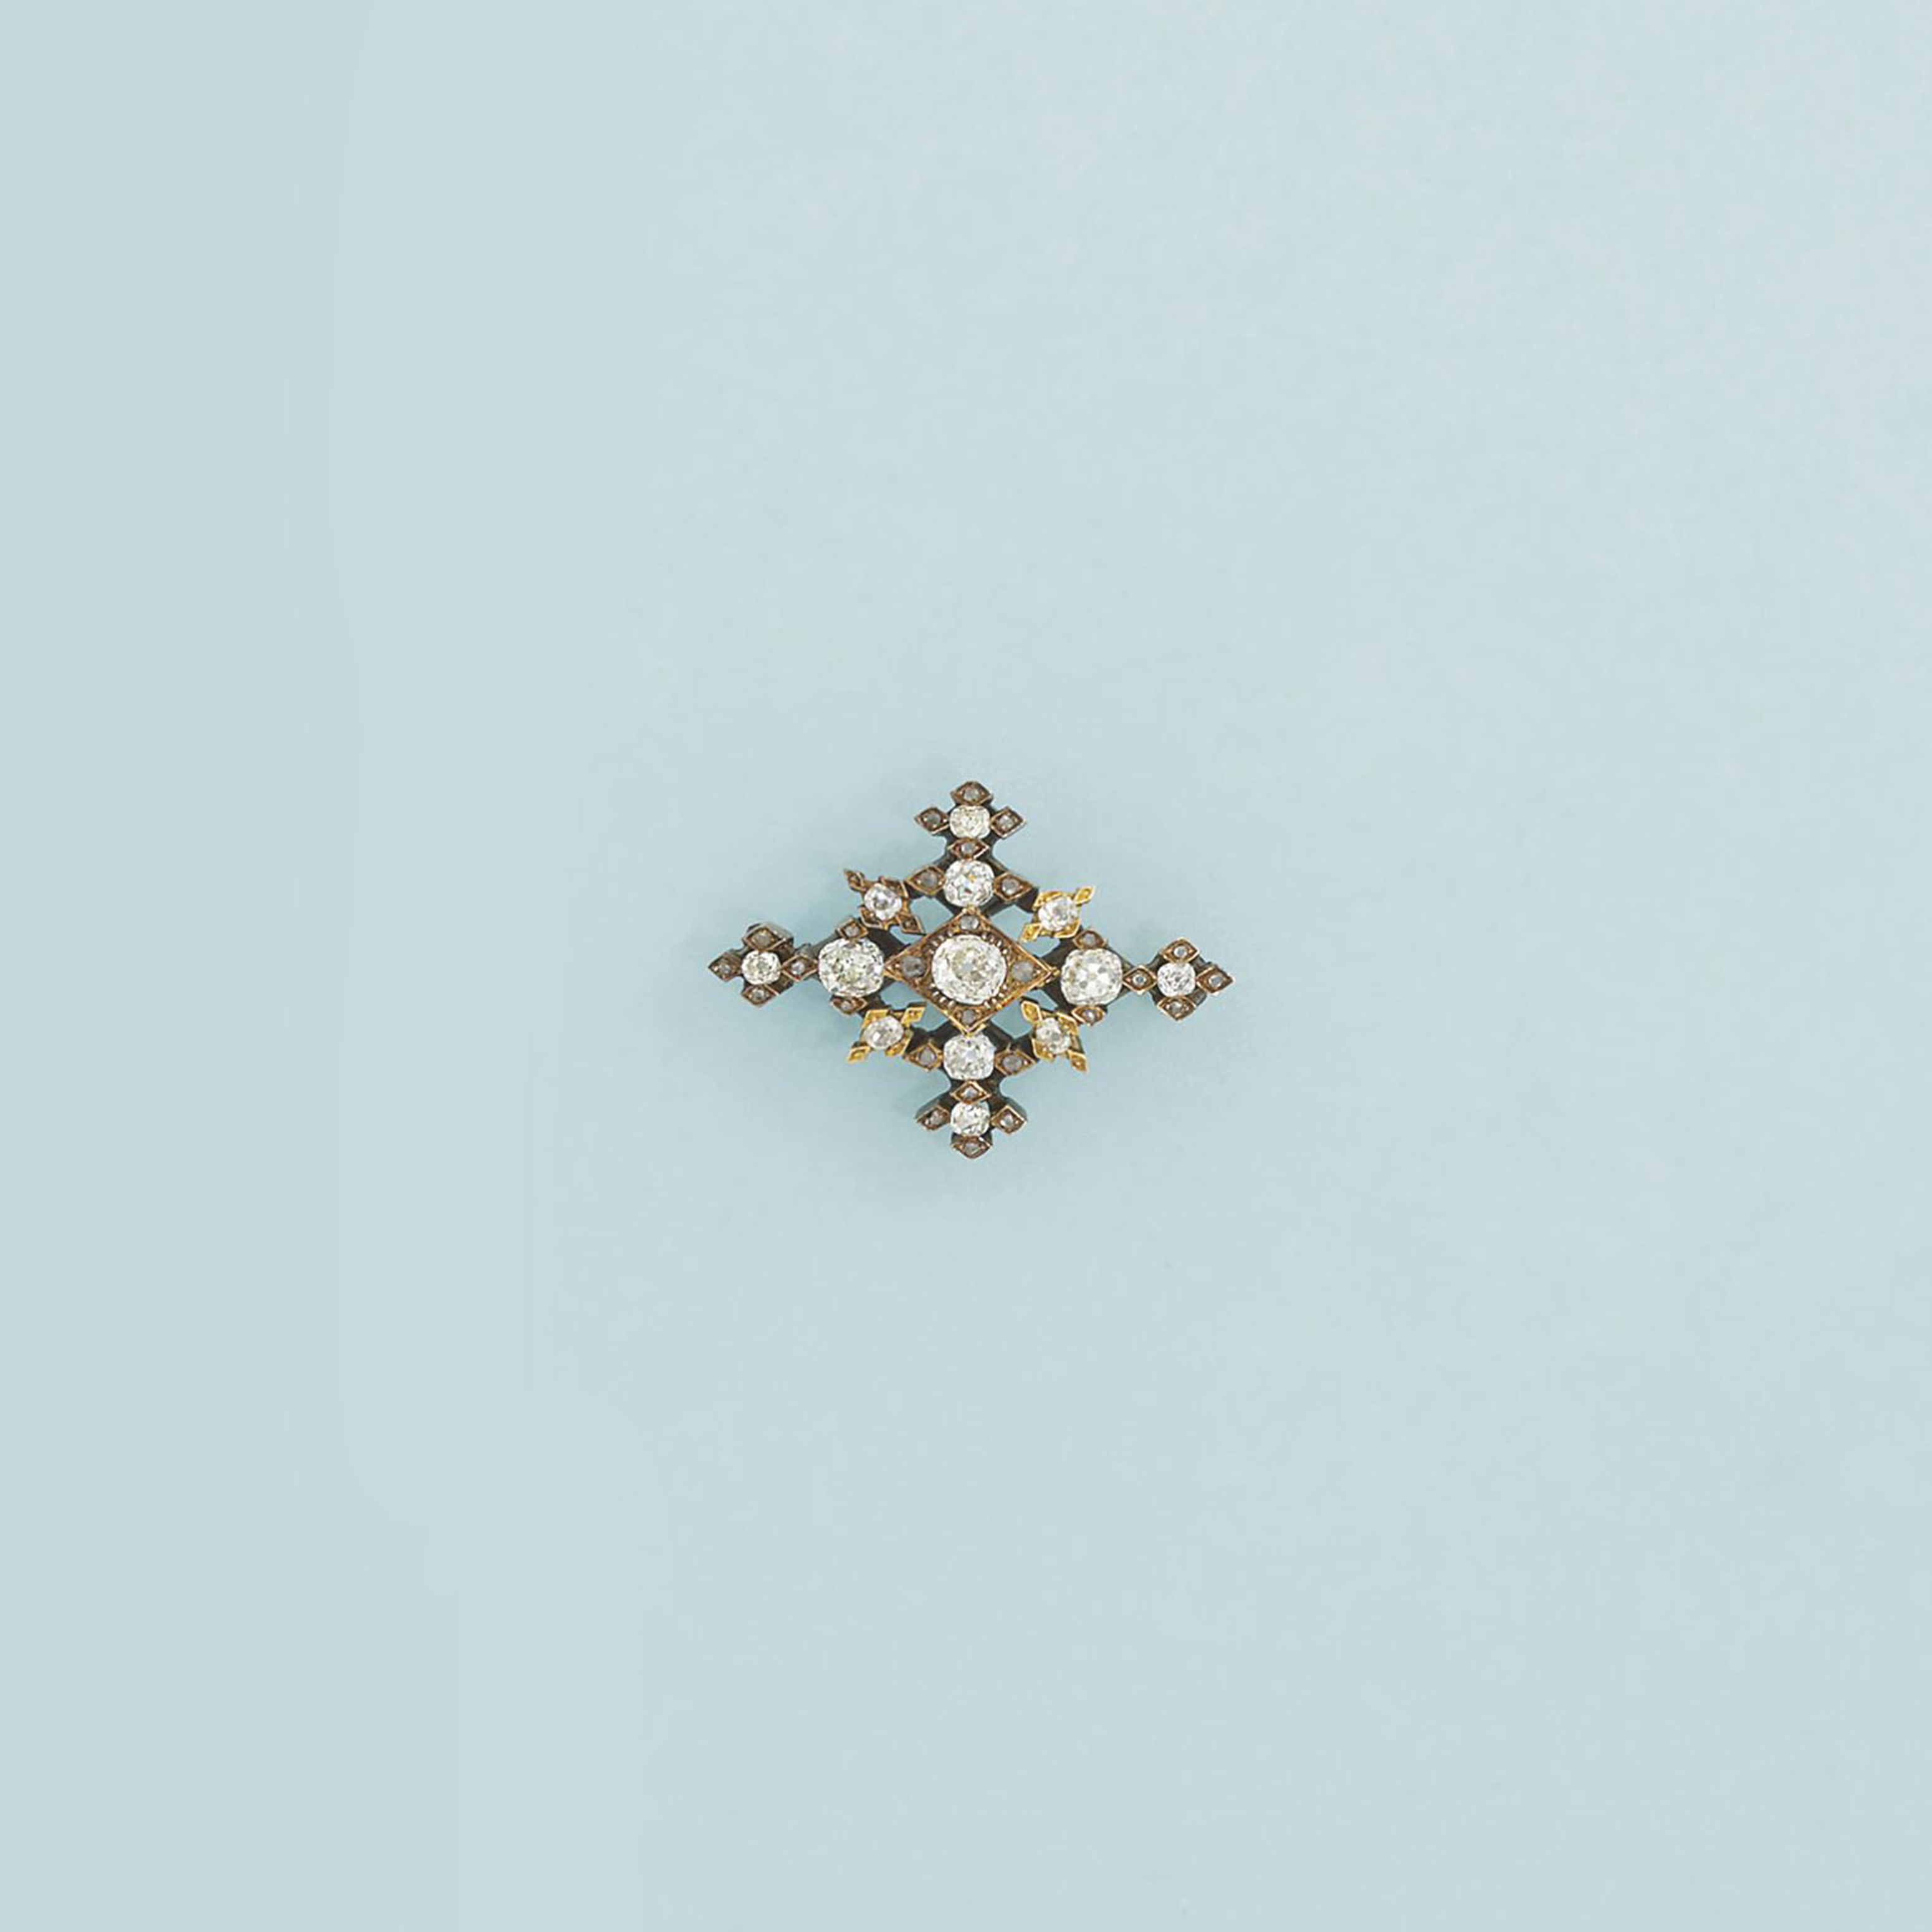 A diamond brooch and a green p